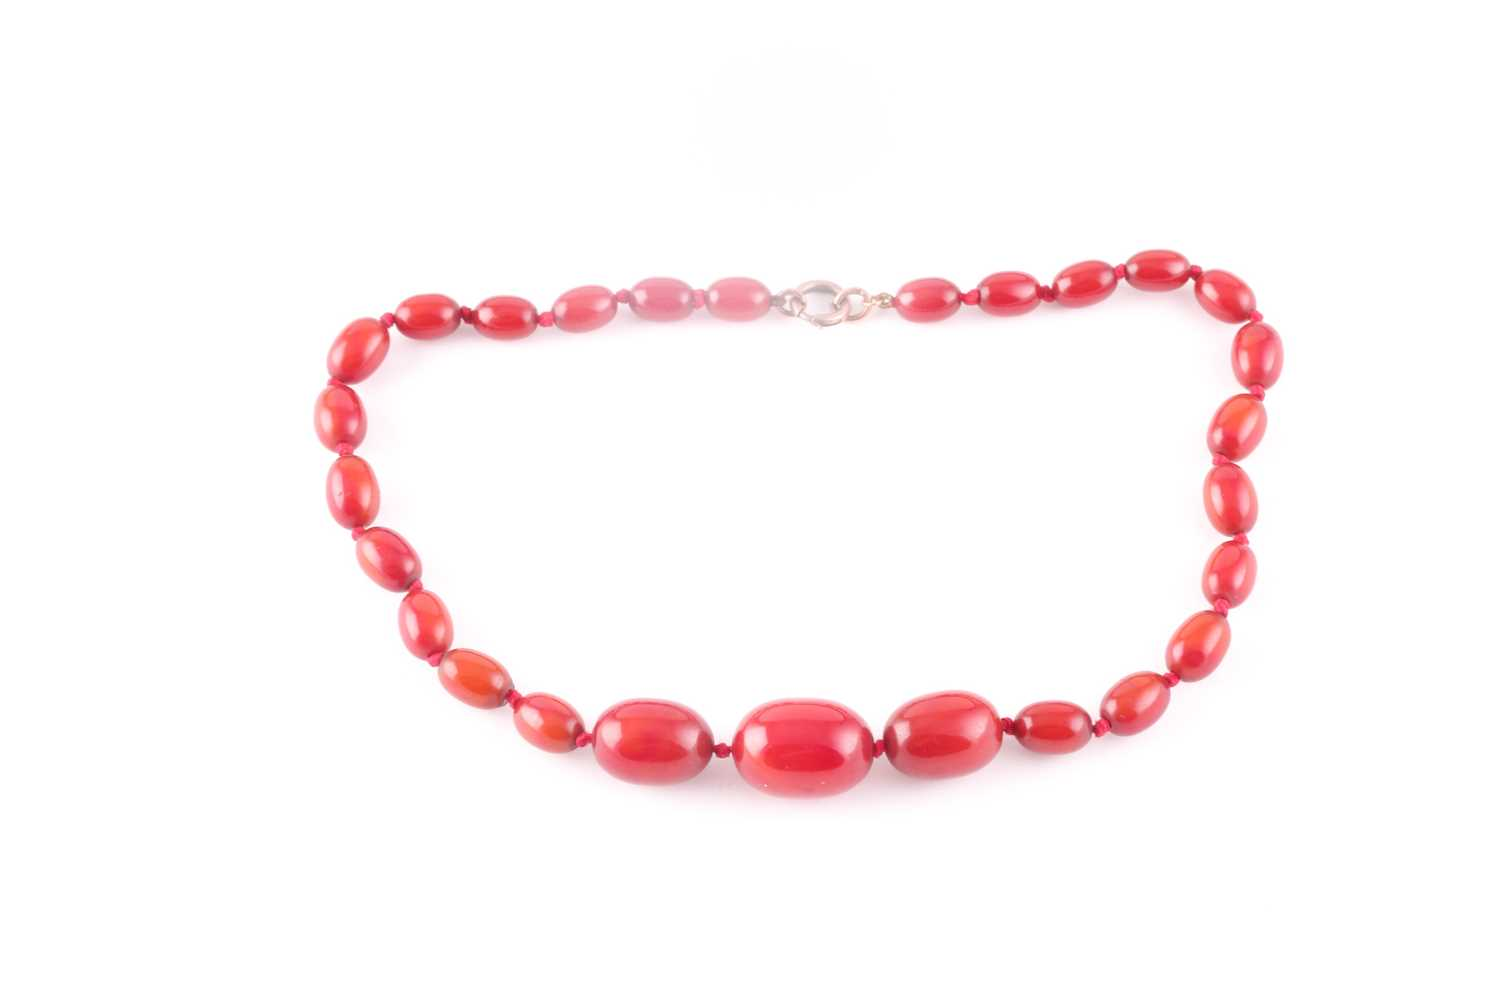 A cherry coloured Bakelite amber style bead necklace, comprised of oval beads, largest bead 21 mm,